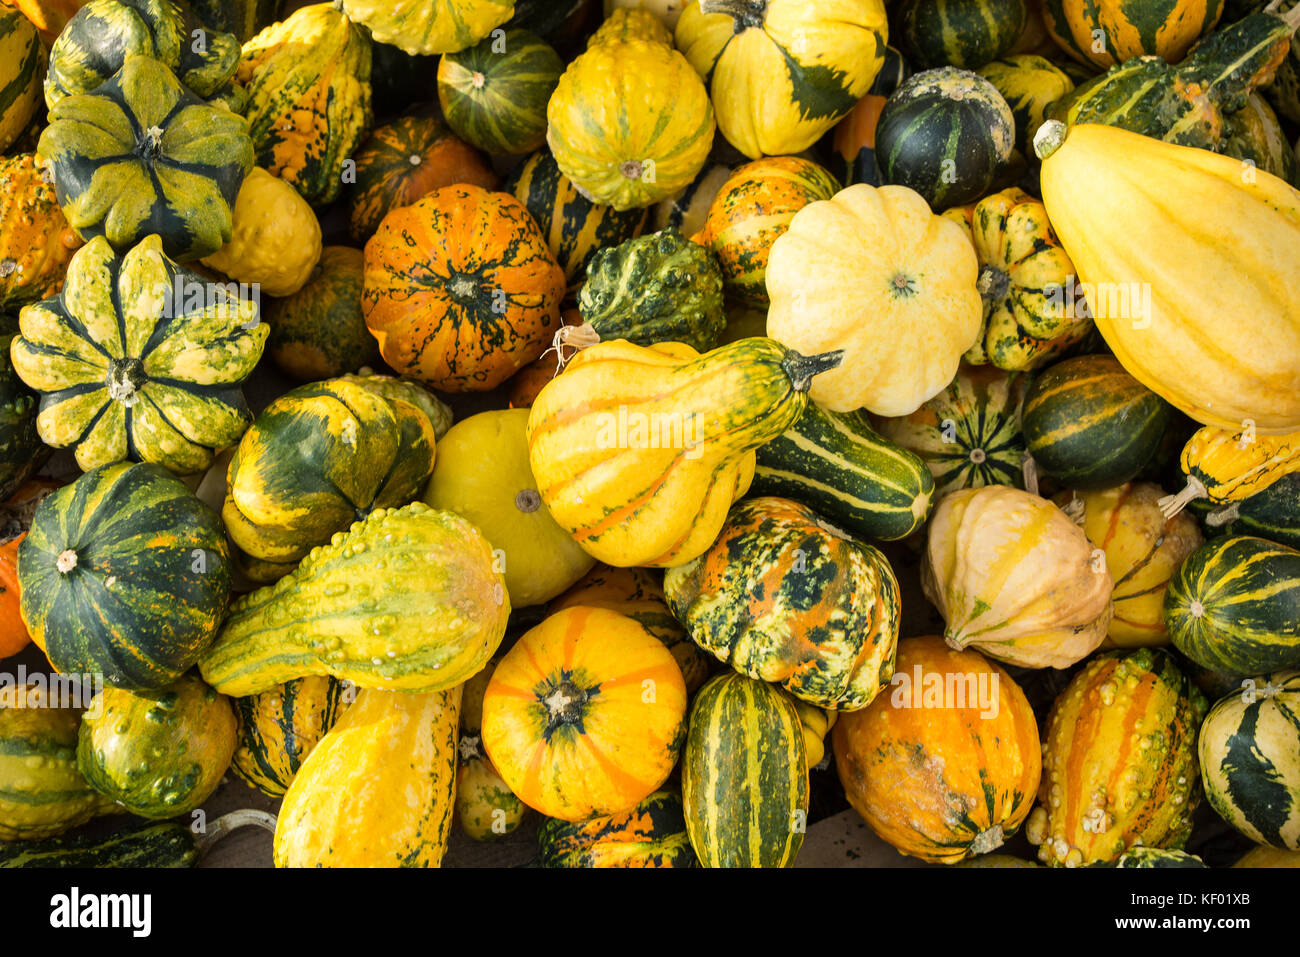 Mini pumpkins in different colors lying on the ground - Stock Image